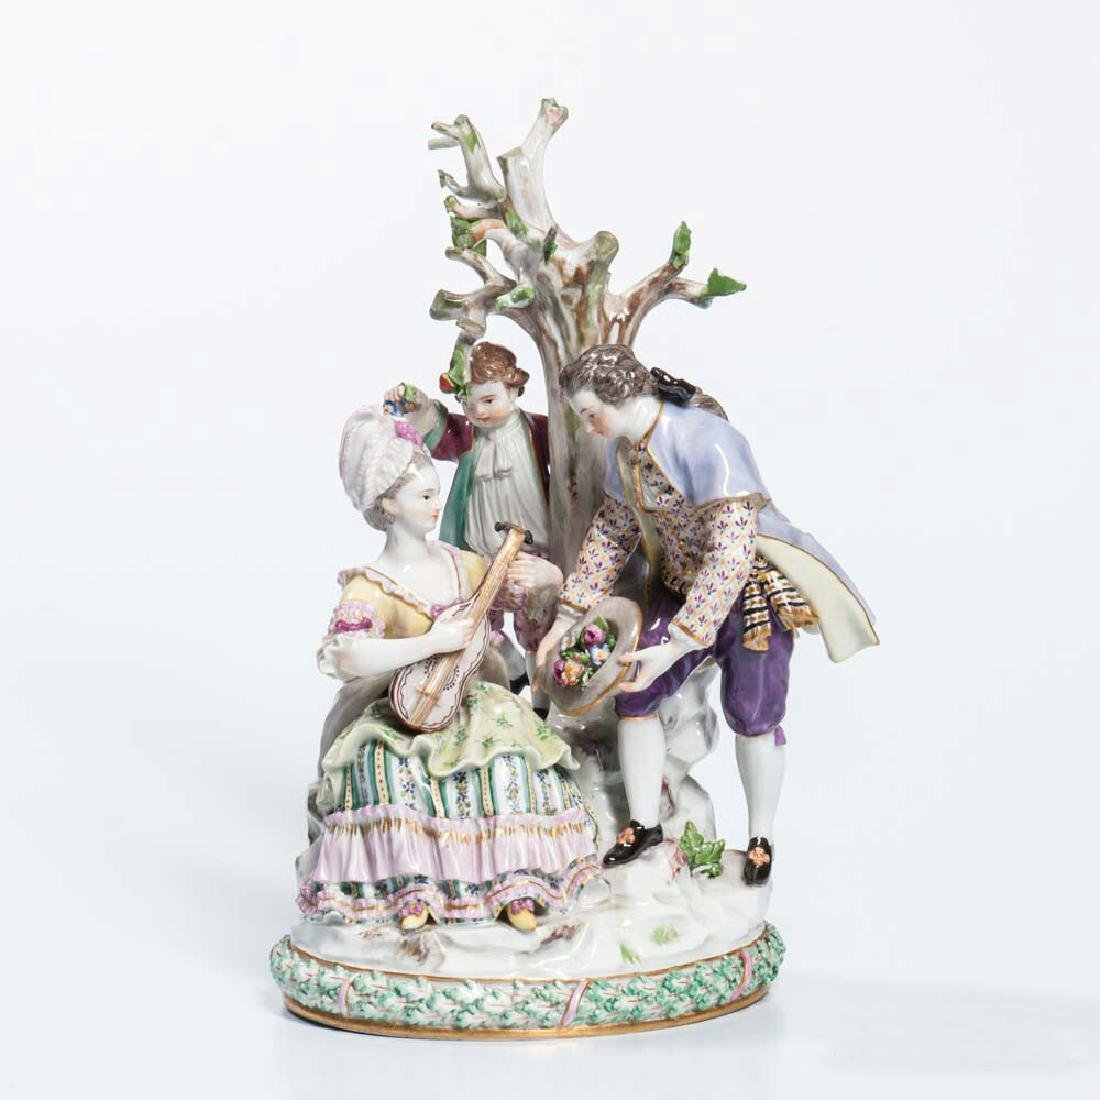 Meissen Porcelain Figural Group, Germany, 19th/early